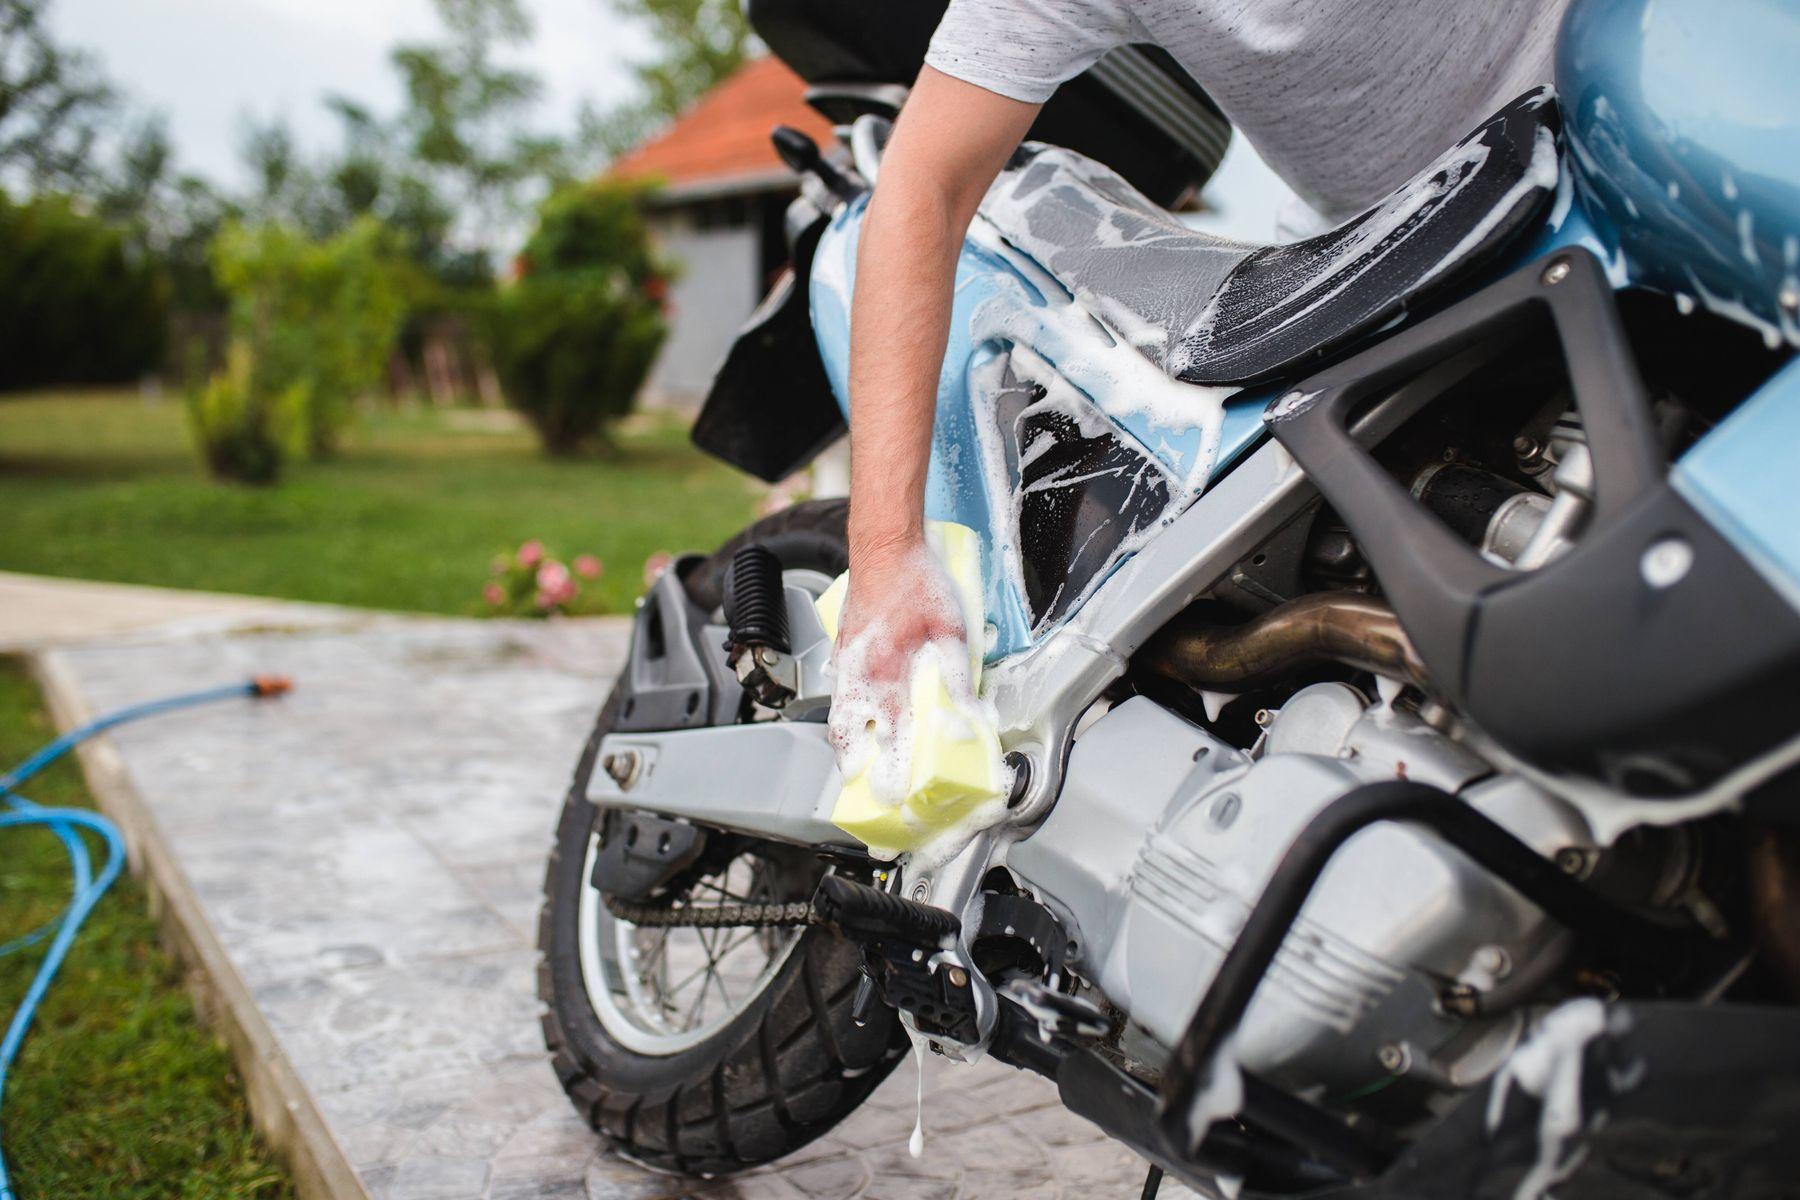 How to Wash Your Motorcycle | Get Set Clean